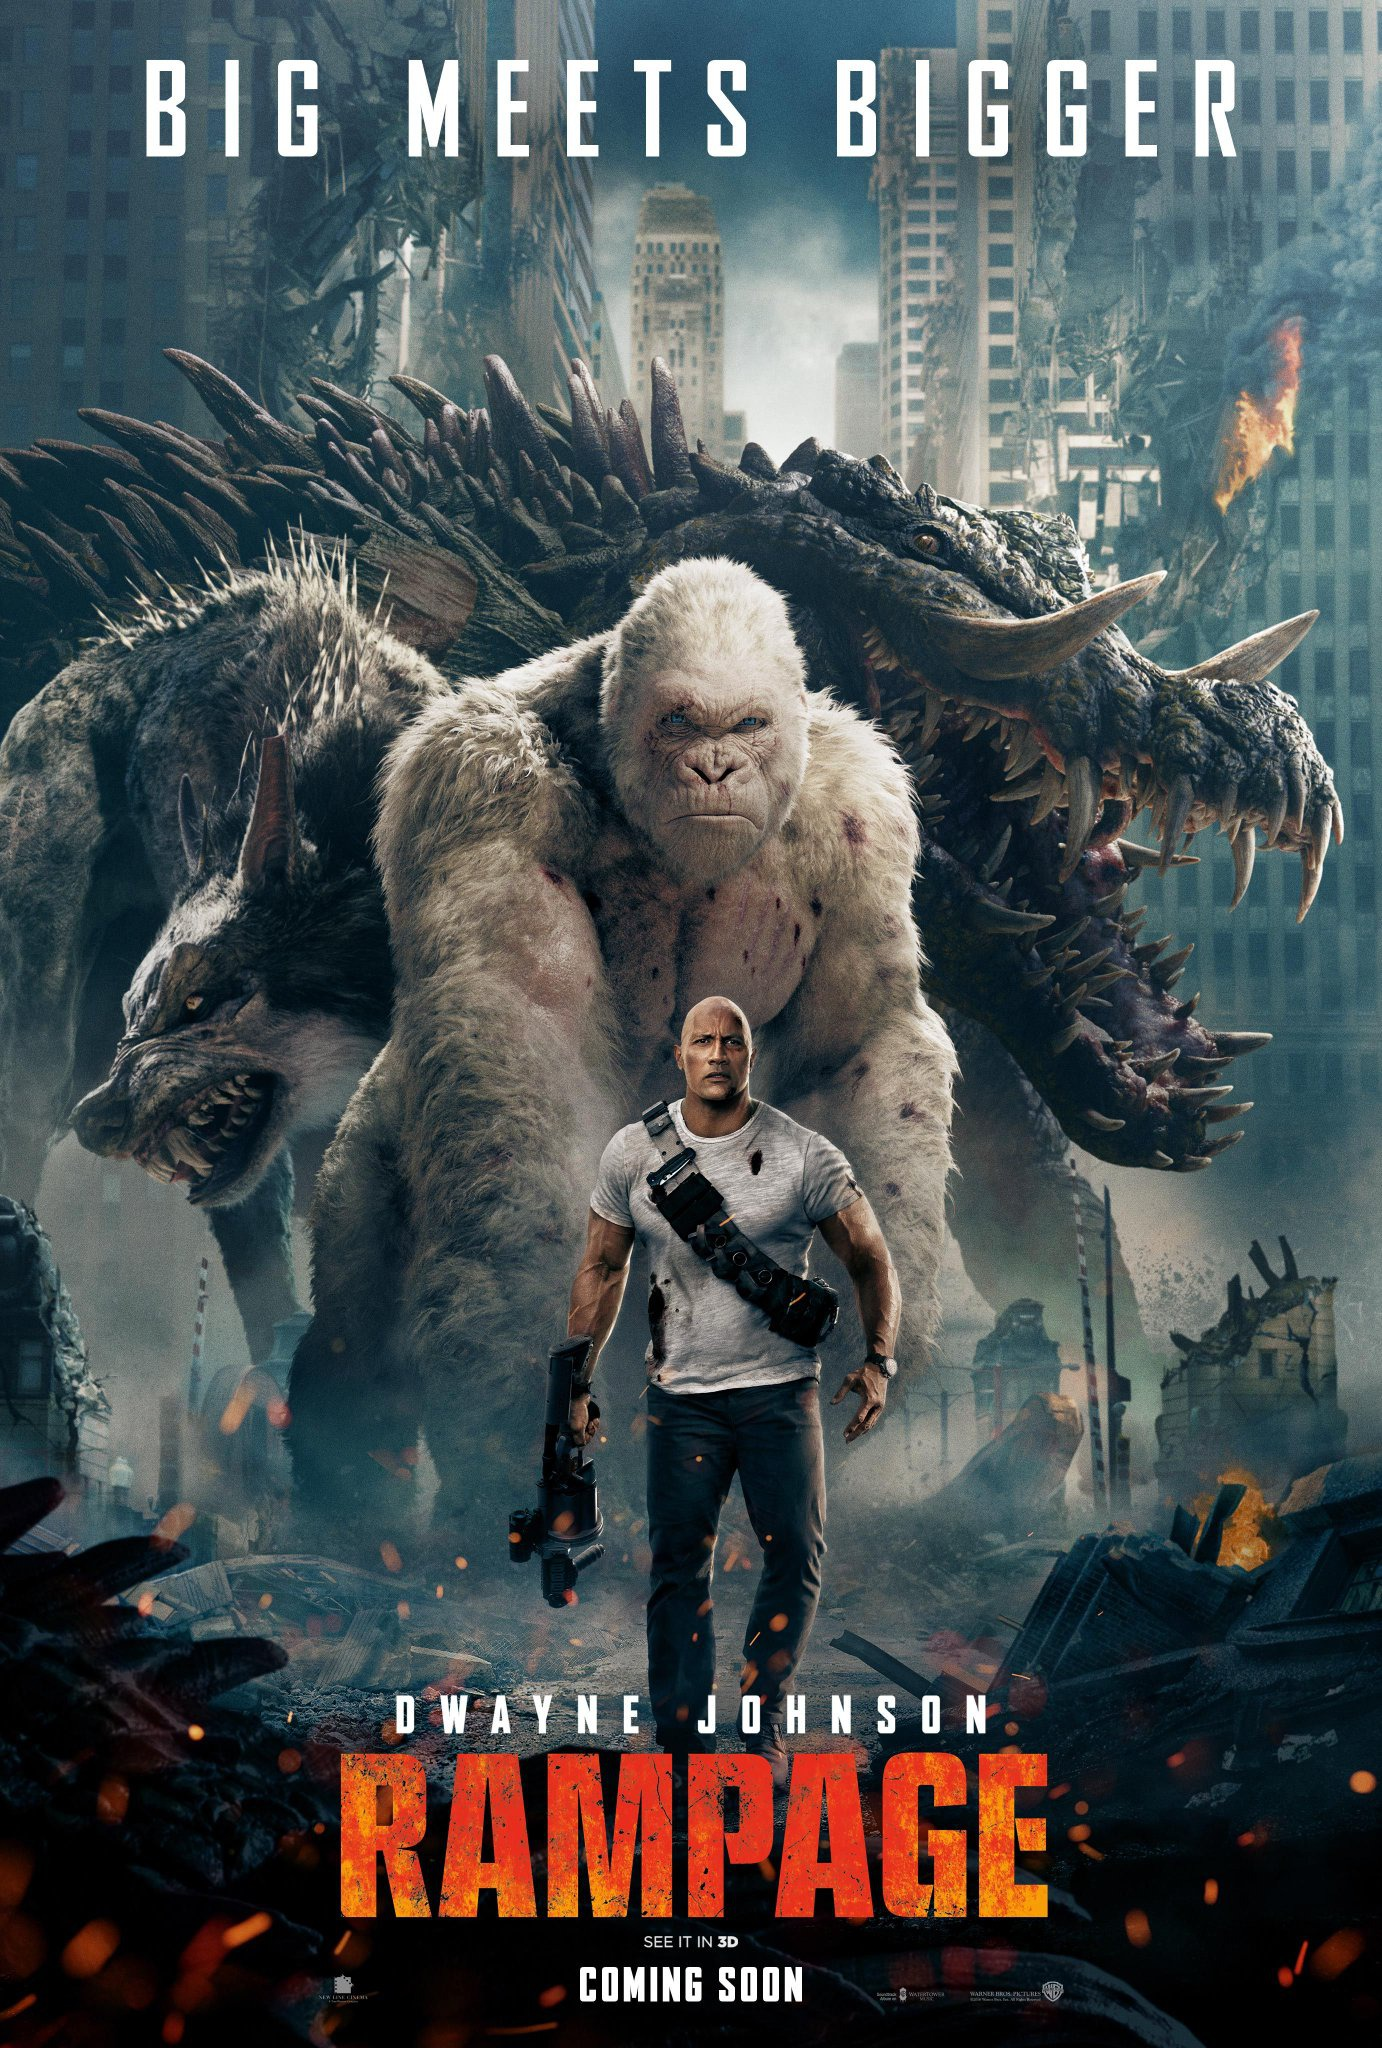 Own Rampage (starring Dwayne Johnson) now